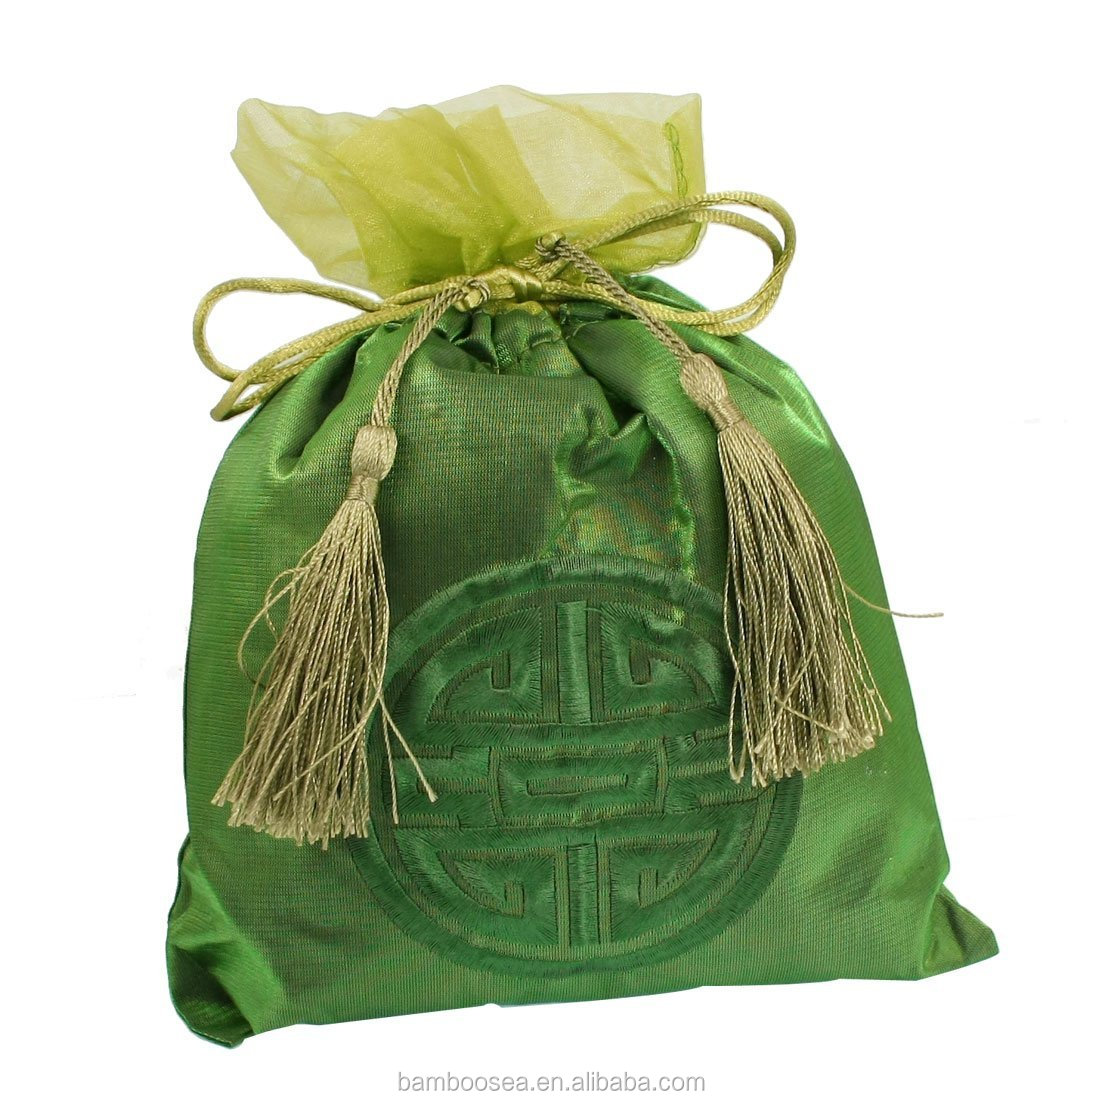 ar Auto Green Embroidered Bag Bamboo Charcoal Air Deodorant Decoration